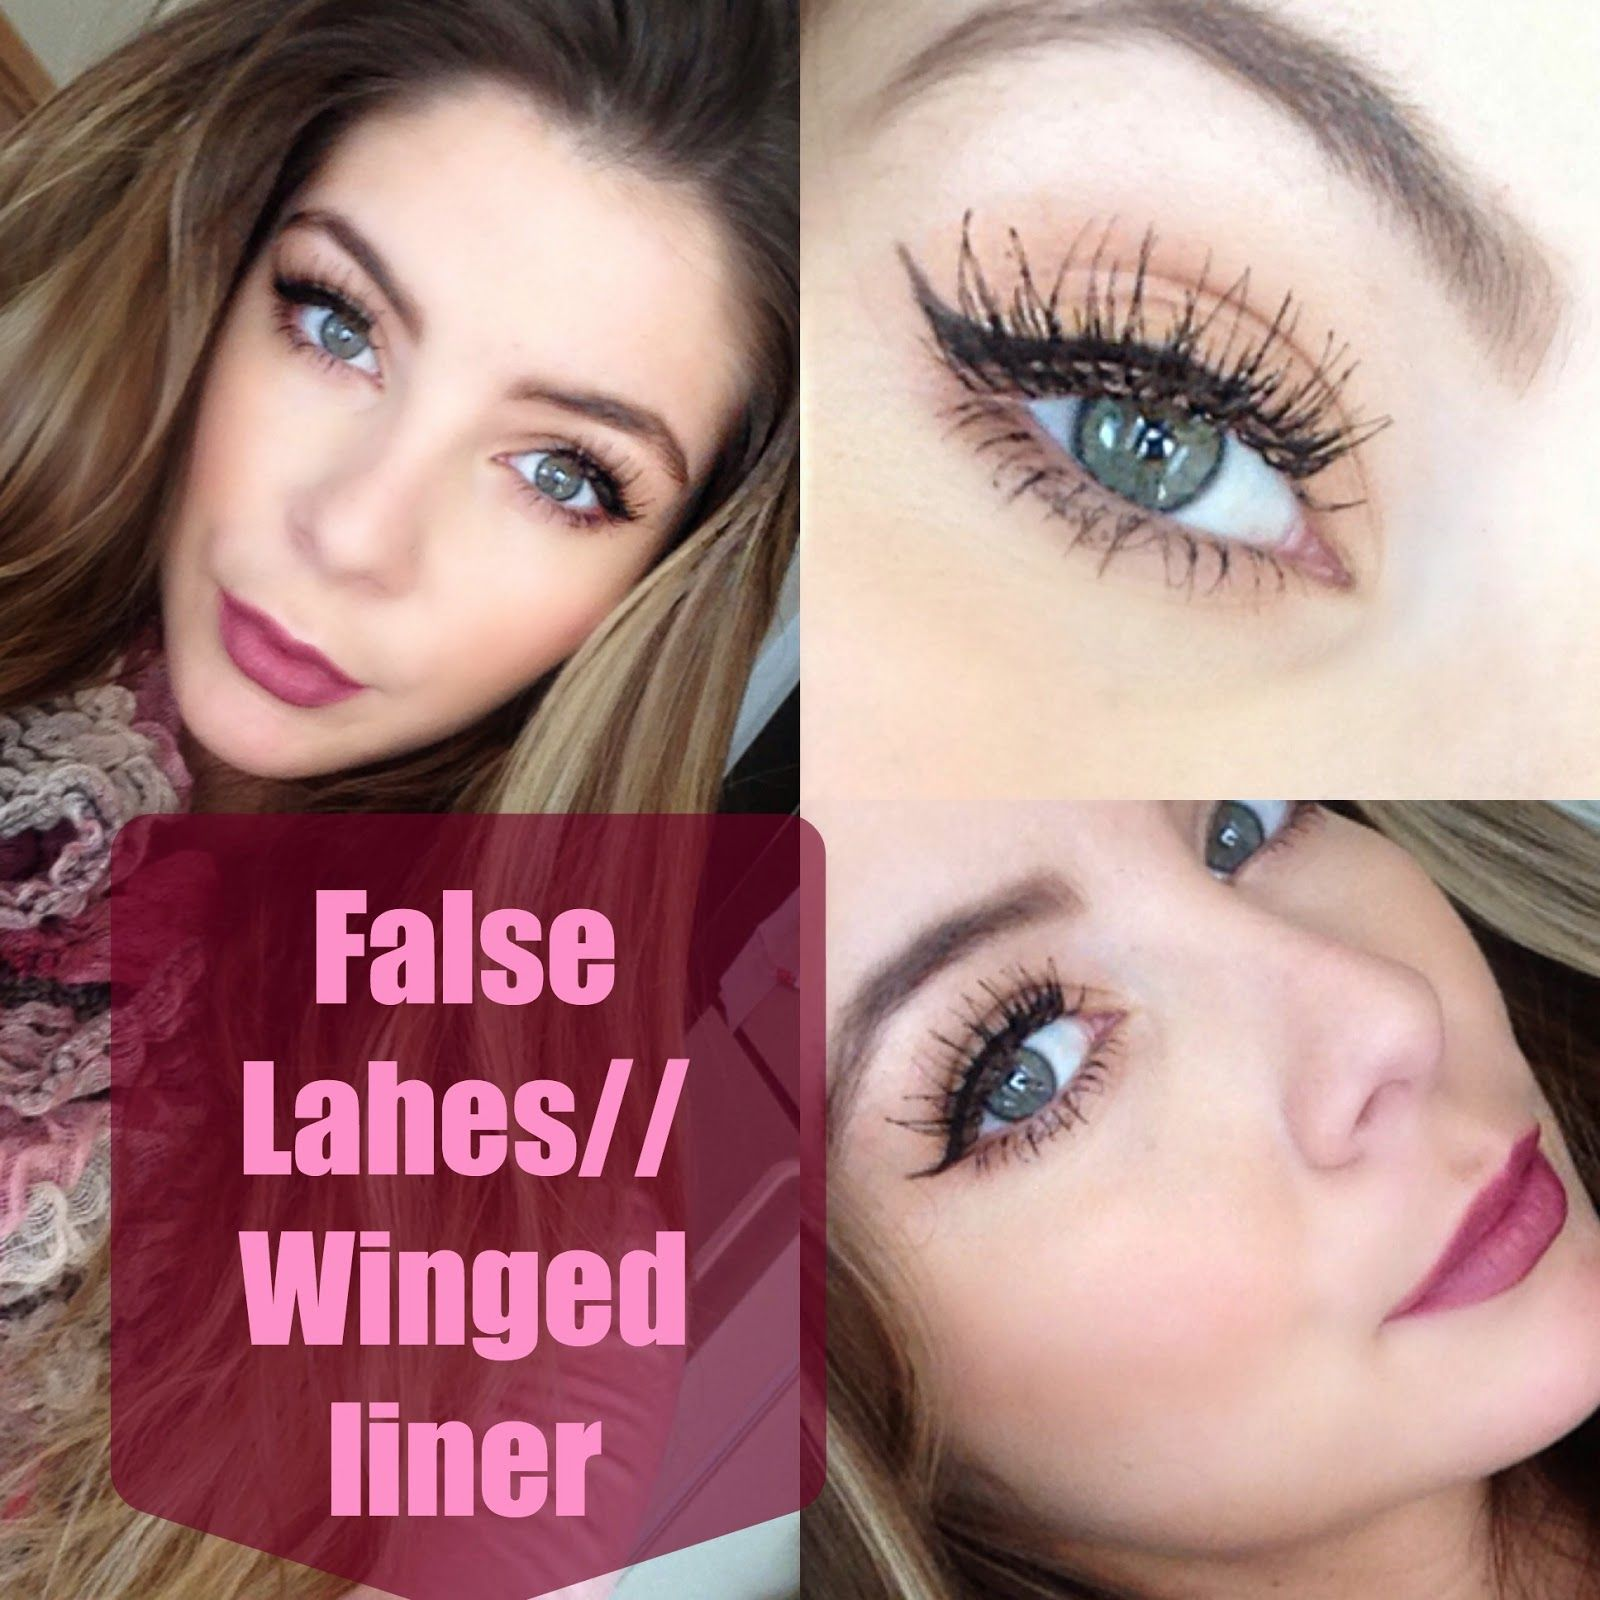 649ad77c1a4 How to Apply False Lashes and Winged Liner   Nikole DeBell Beauty  www.nikoledebellebeauty.com winged liner, false lashes, nyx wicked lashes,  nyx cosmetics ...